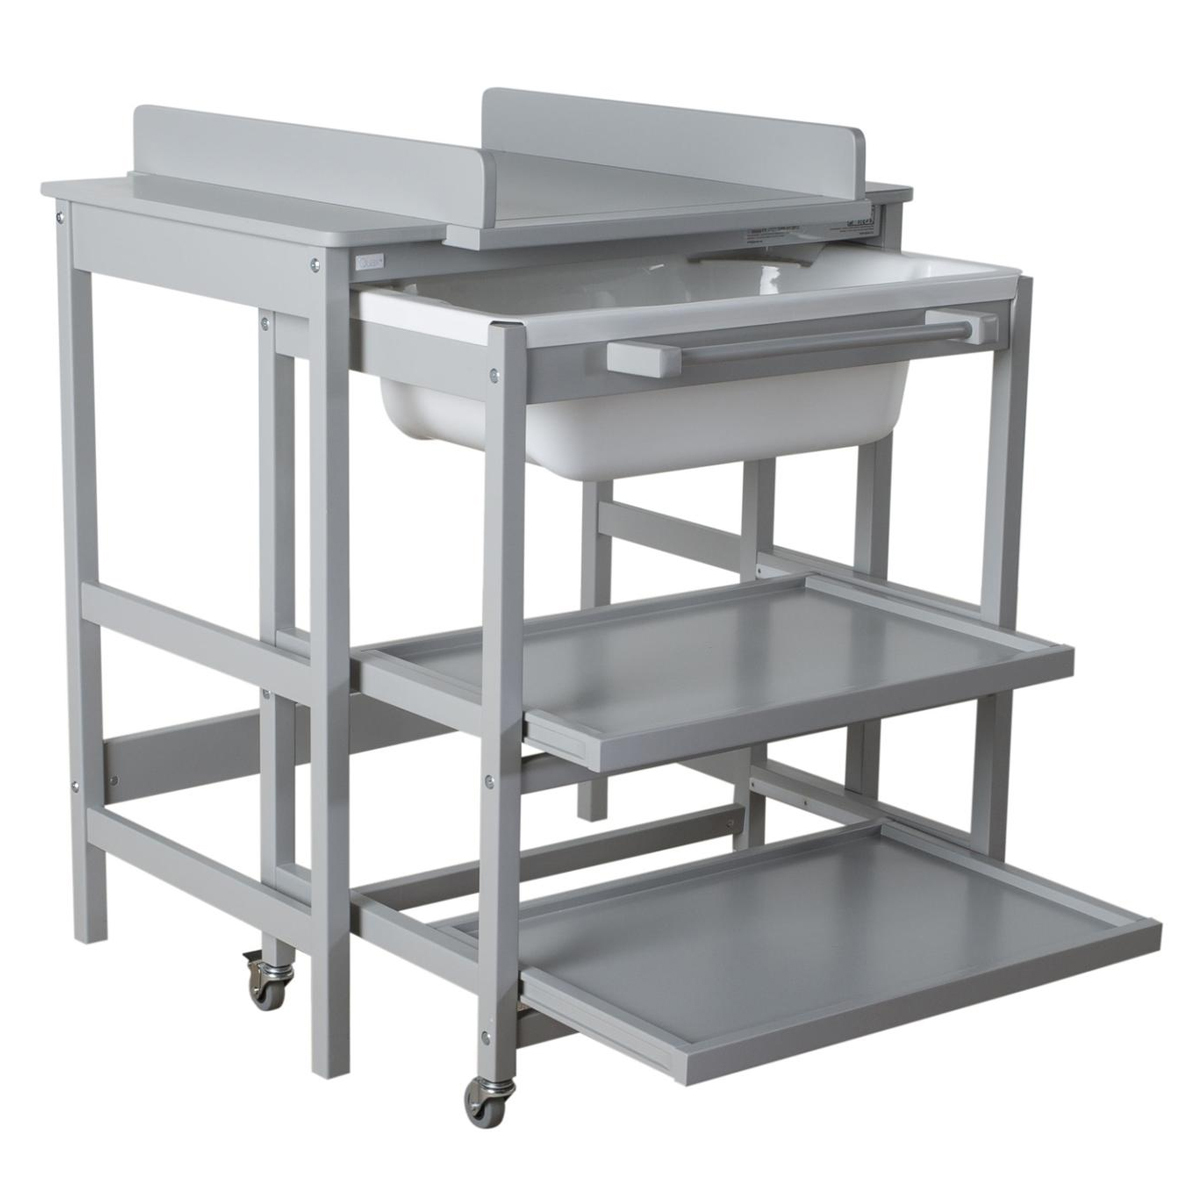 Table à langer Meuble de Bain Smart Confort - Griffin Grey Meuble de Bain Smart Confort - Griffin Grey